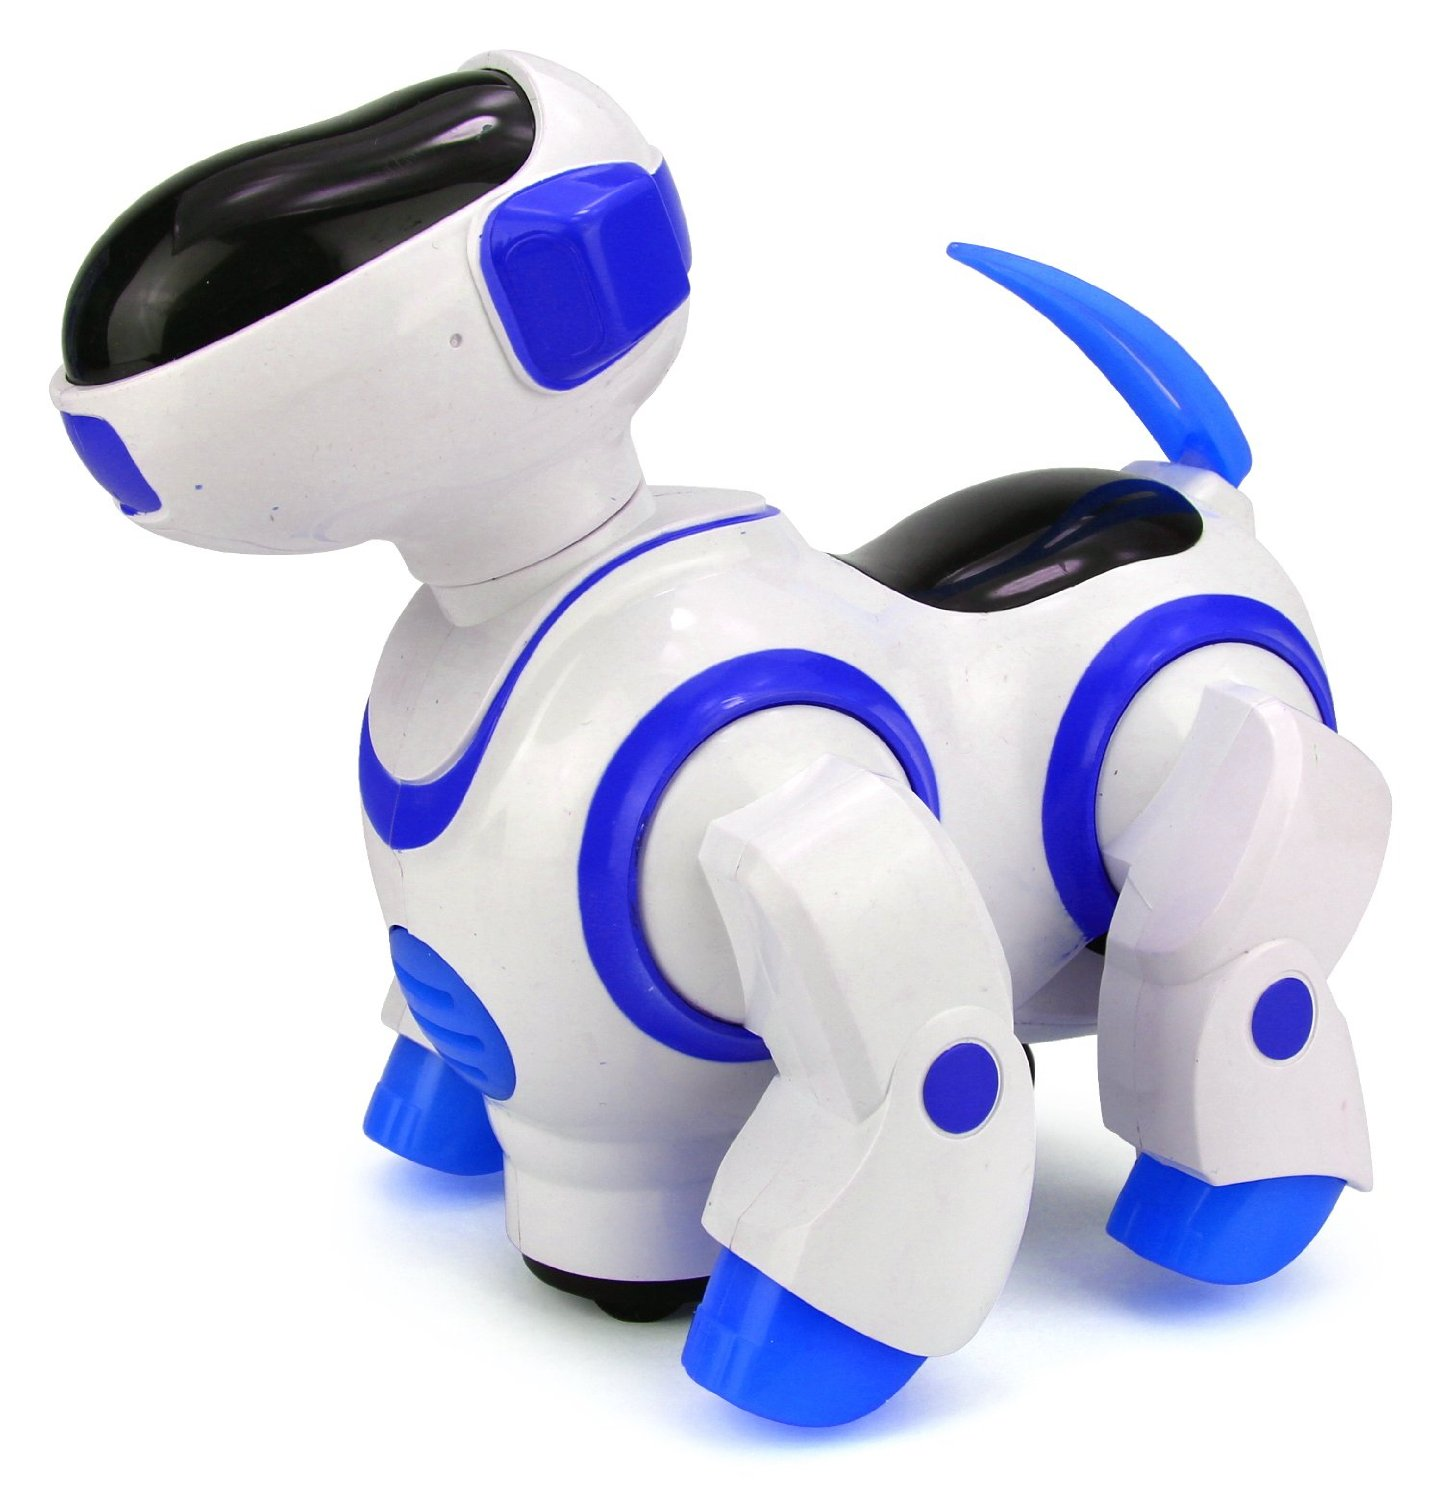 Robo Dancing Dog Battery Operated Kid's Bump and Go Toy w/ Wagging Head, Legs, & Tail, Fun Flashing Lights, Sounds (Blue)